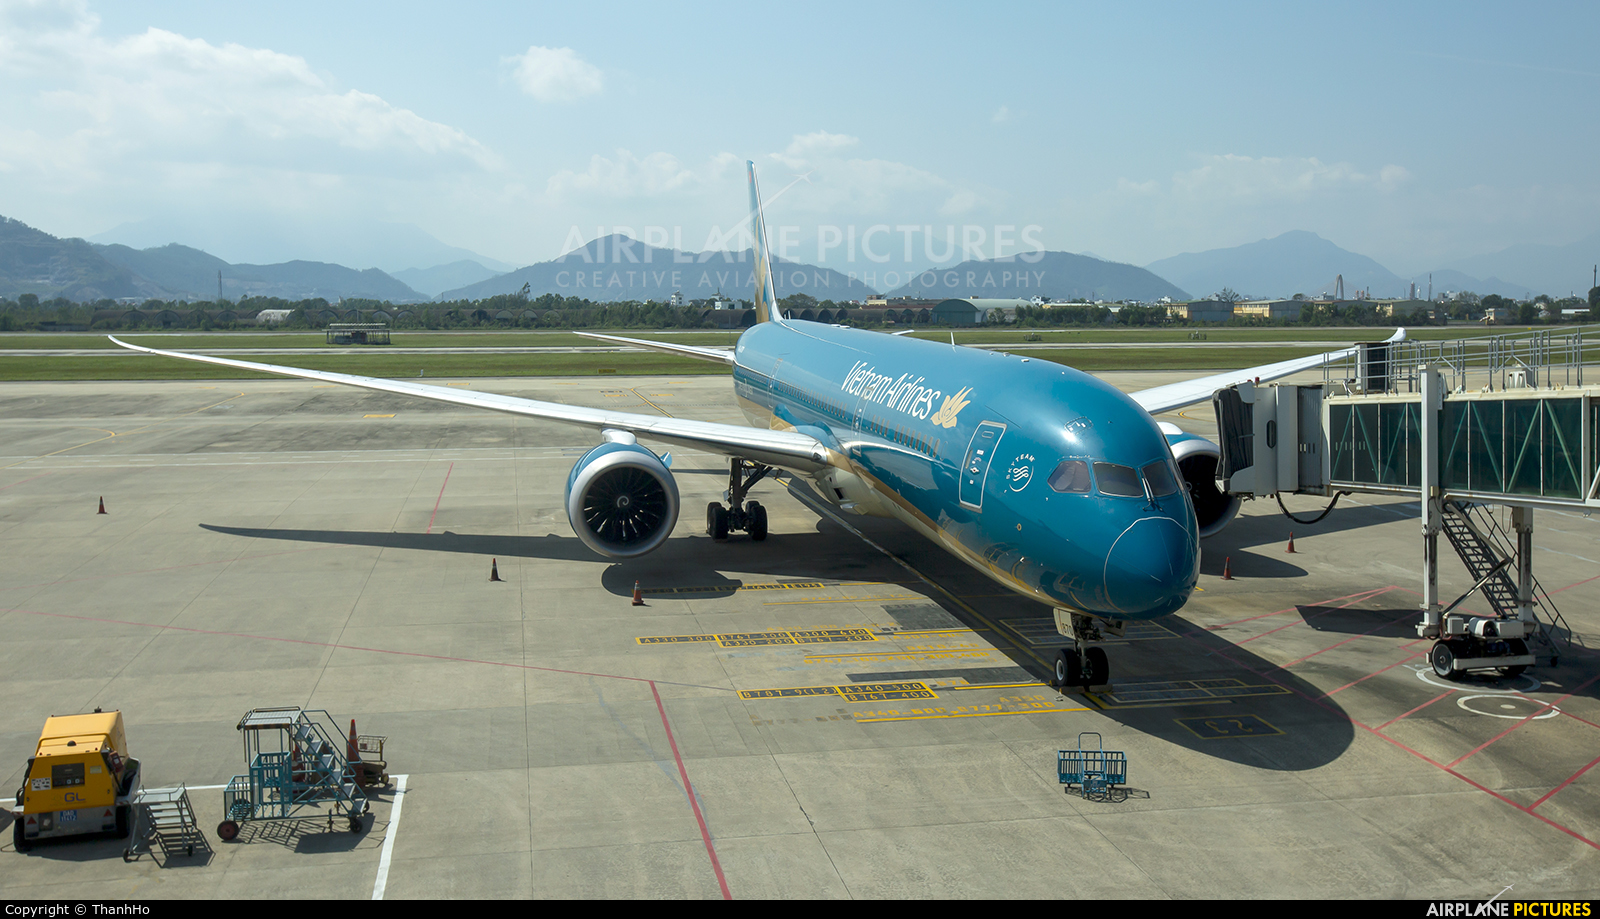 Vietnam Airlines VN-A870 aircraft at Da Nang